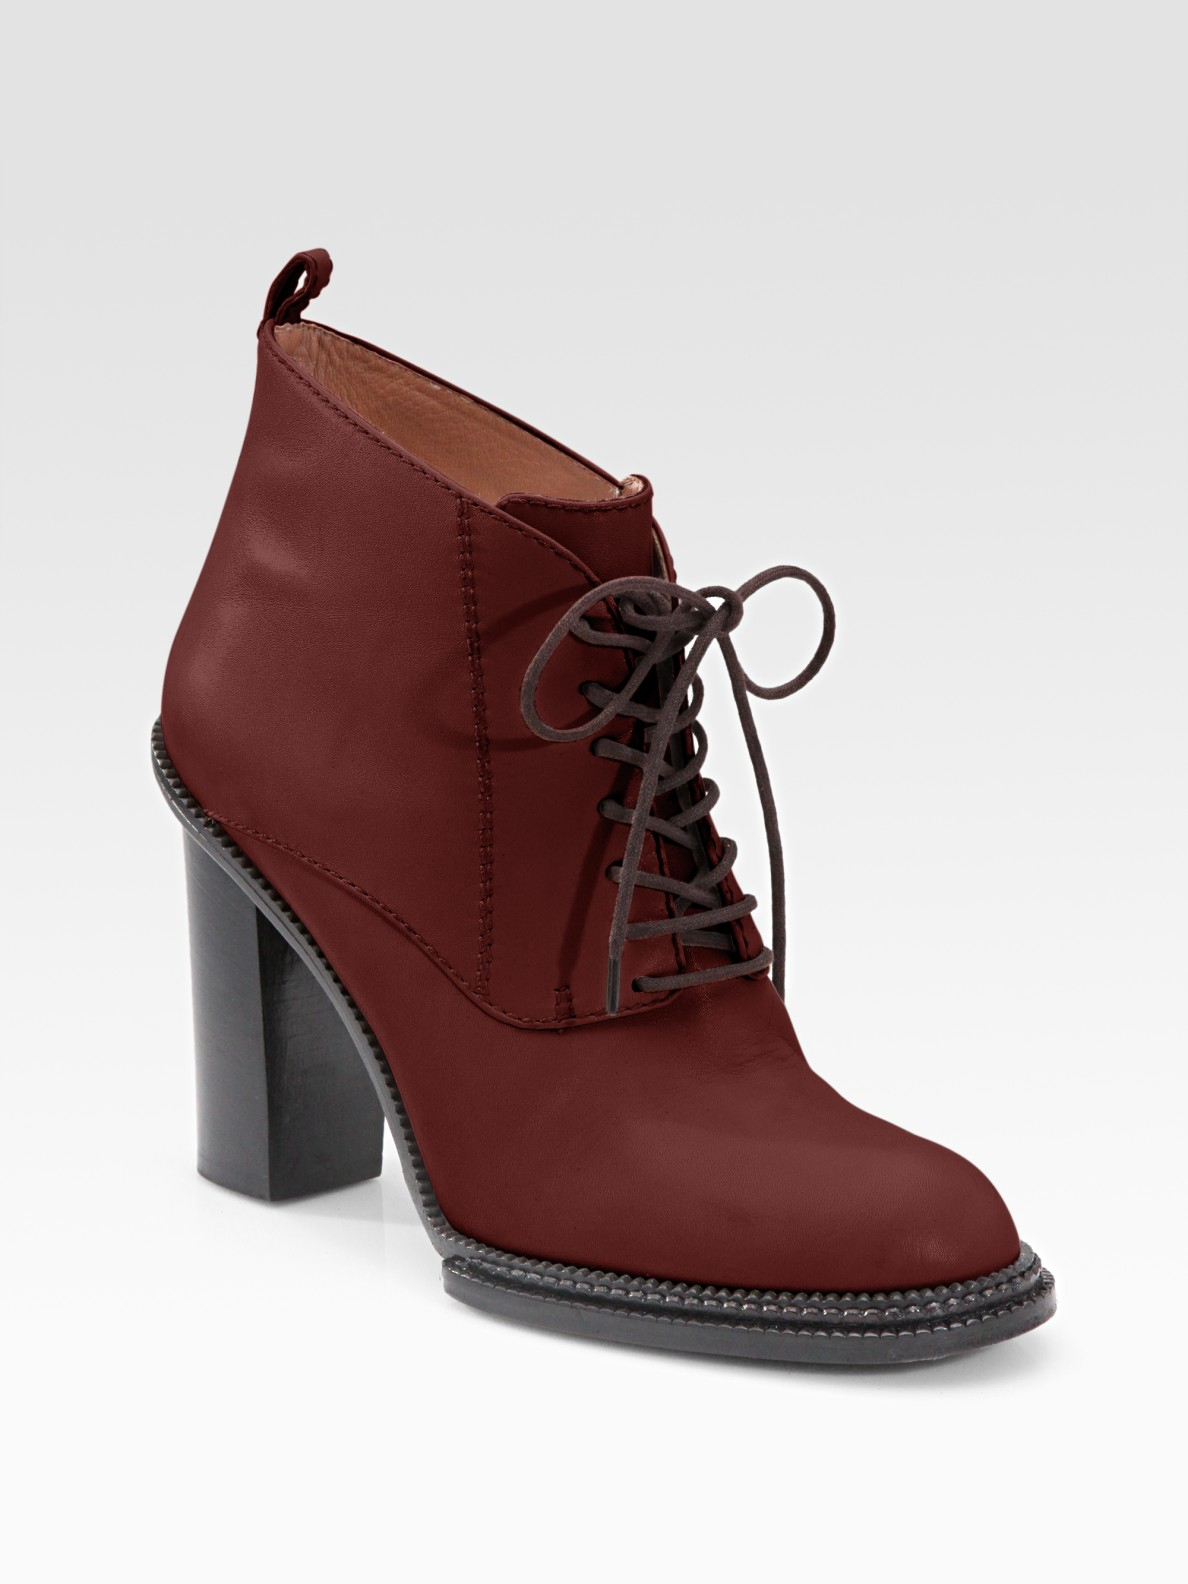 Derek Lam Fede Lace Up Ankle Boots In Red Burgundy Lyst